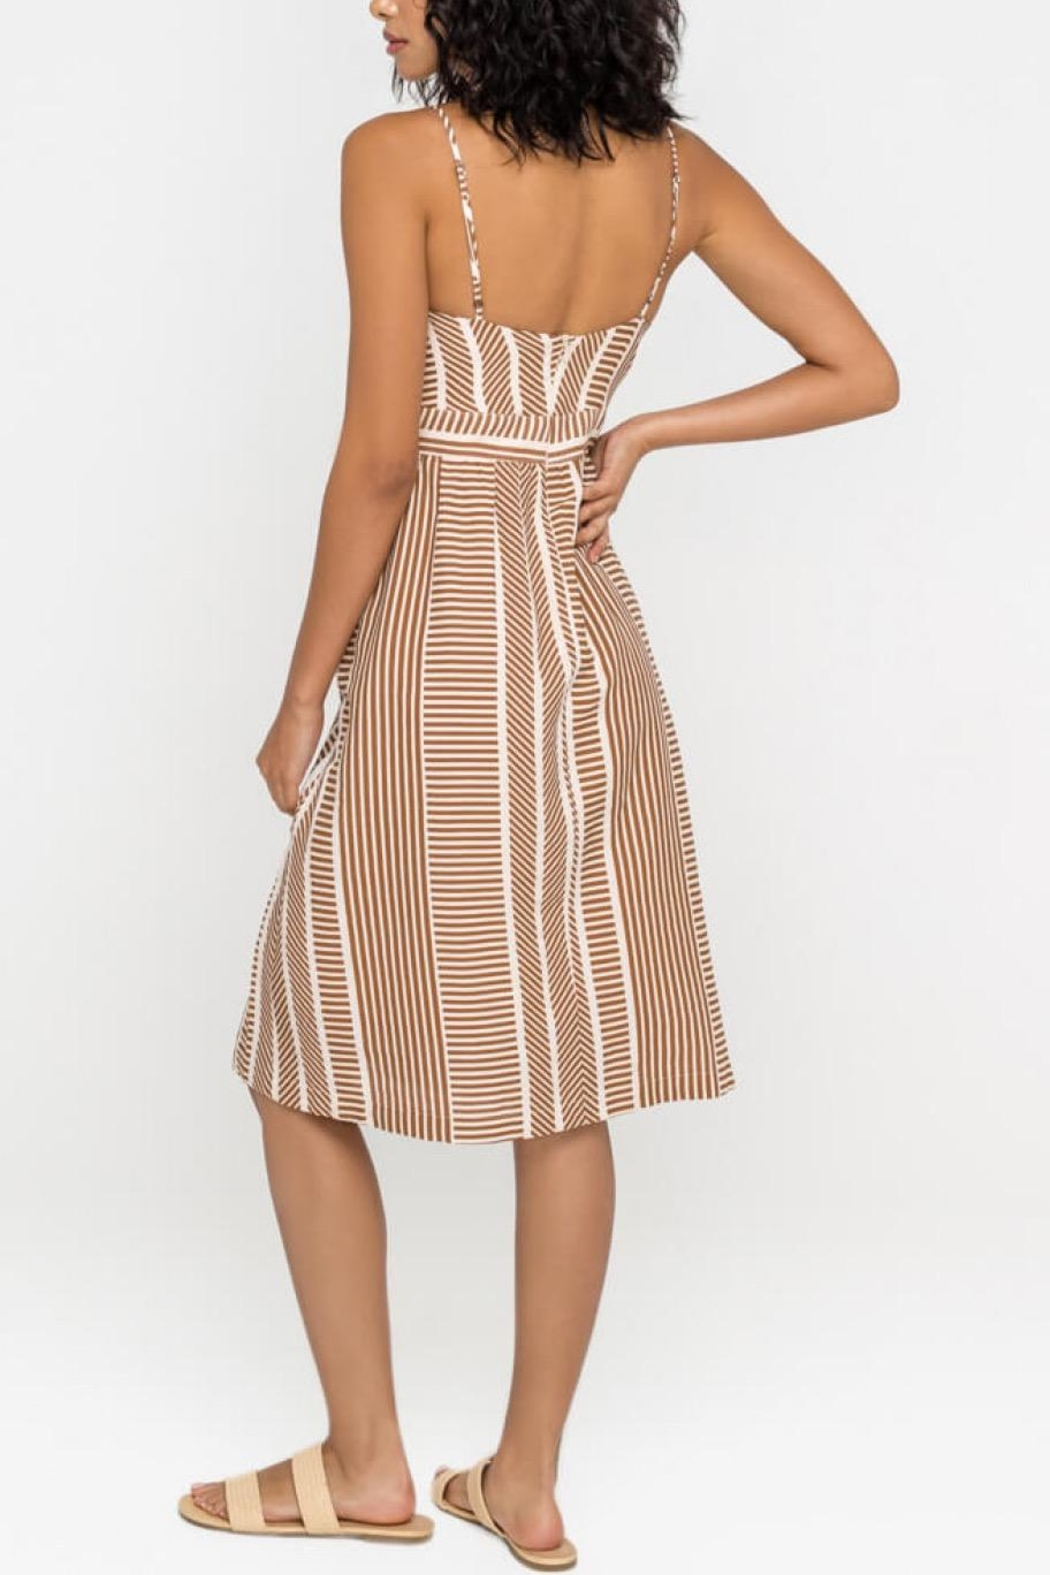 Lush Clothing  Front-Tie Midi Dress - Side Cropped Image